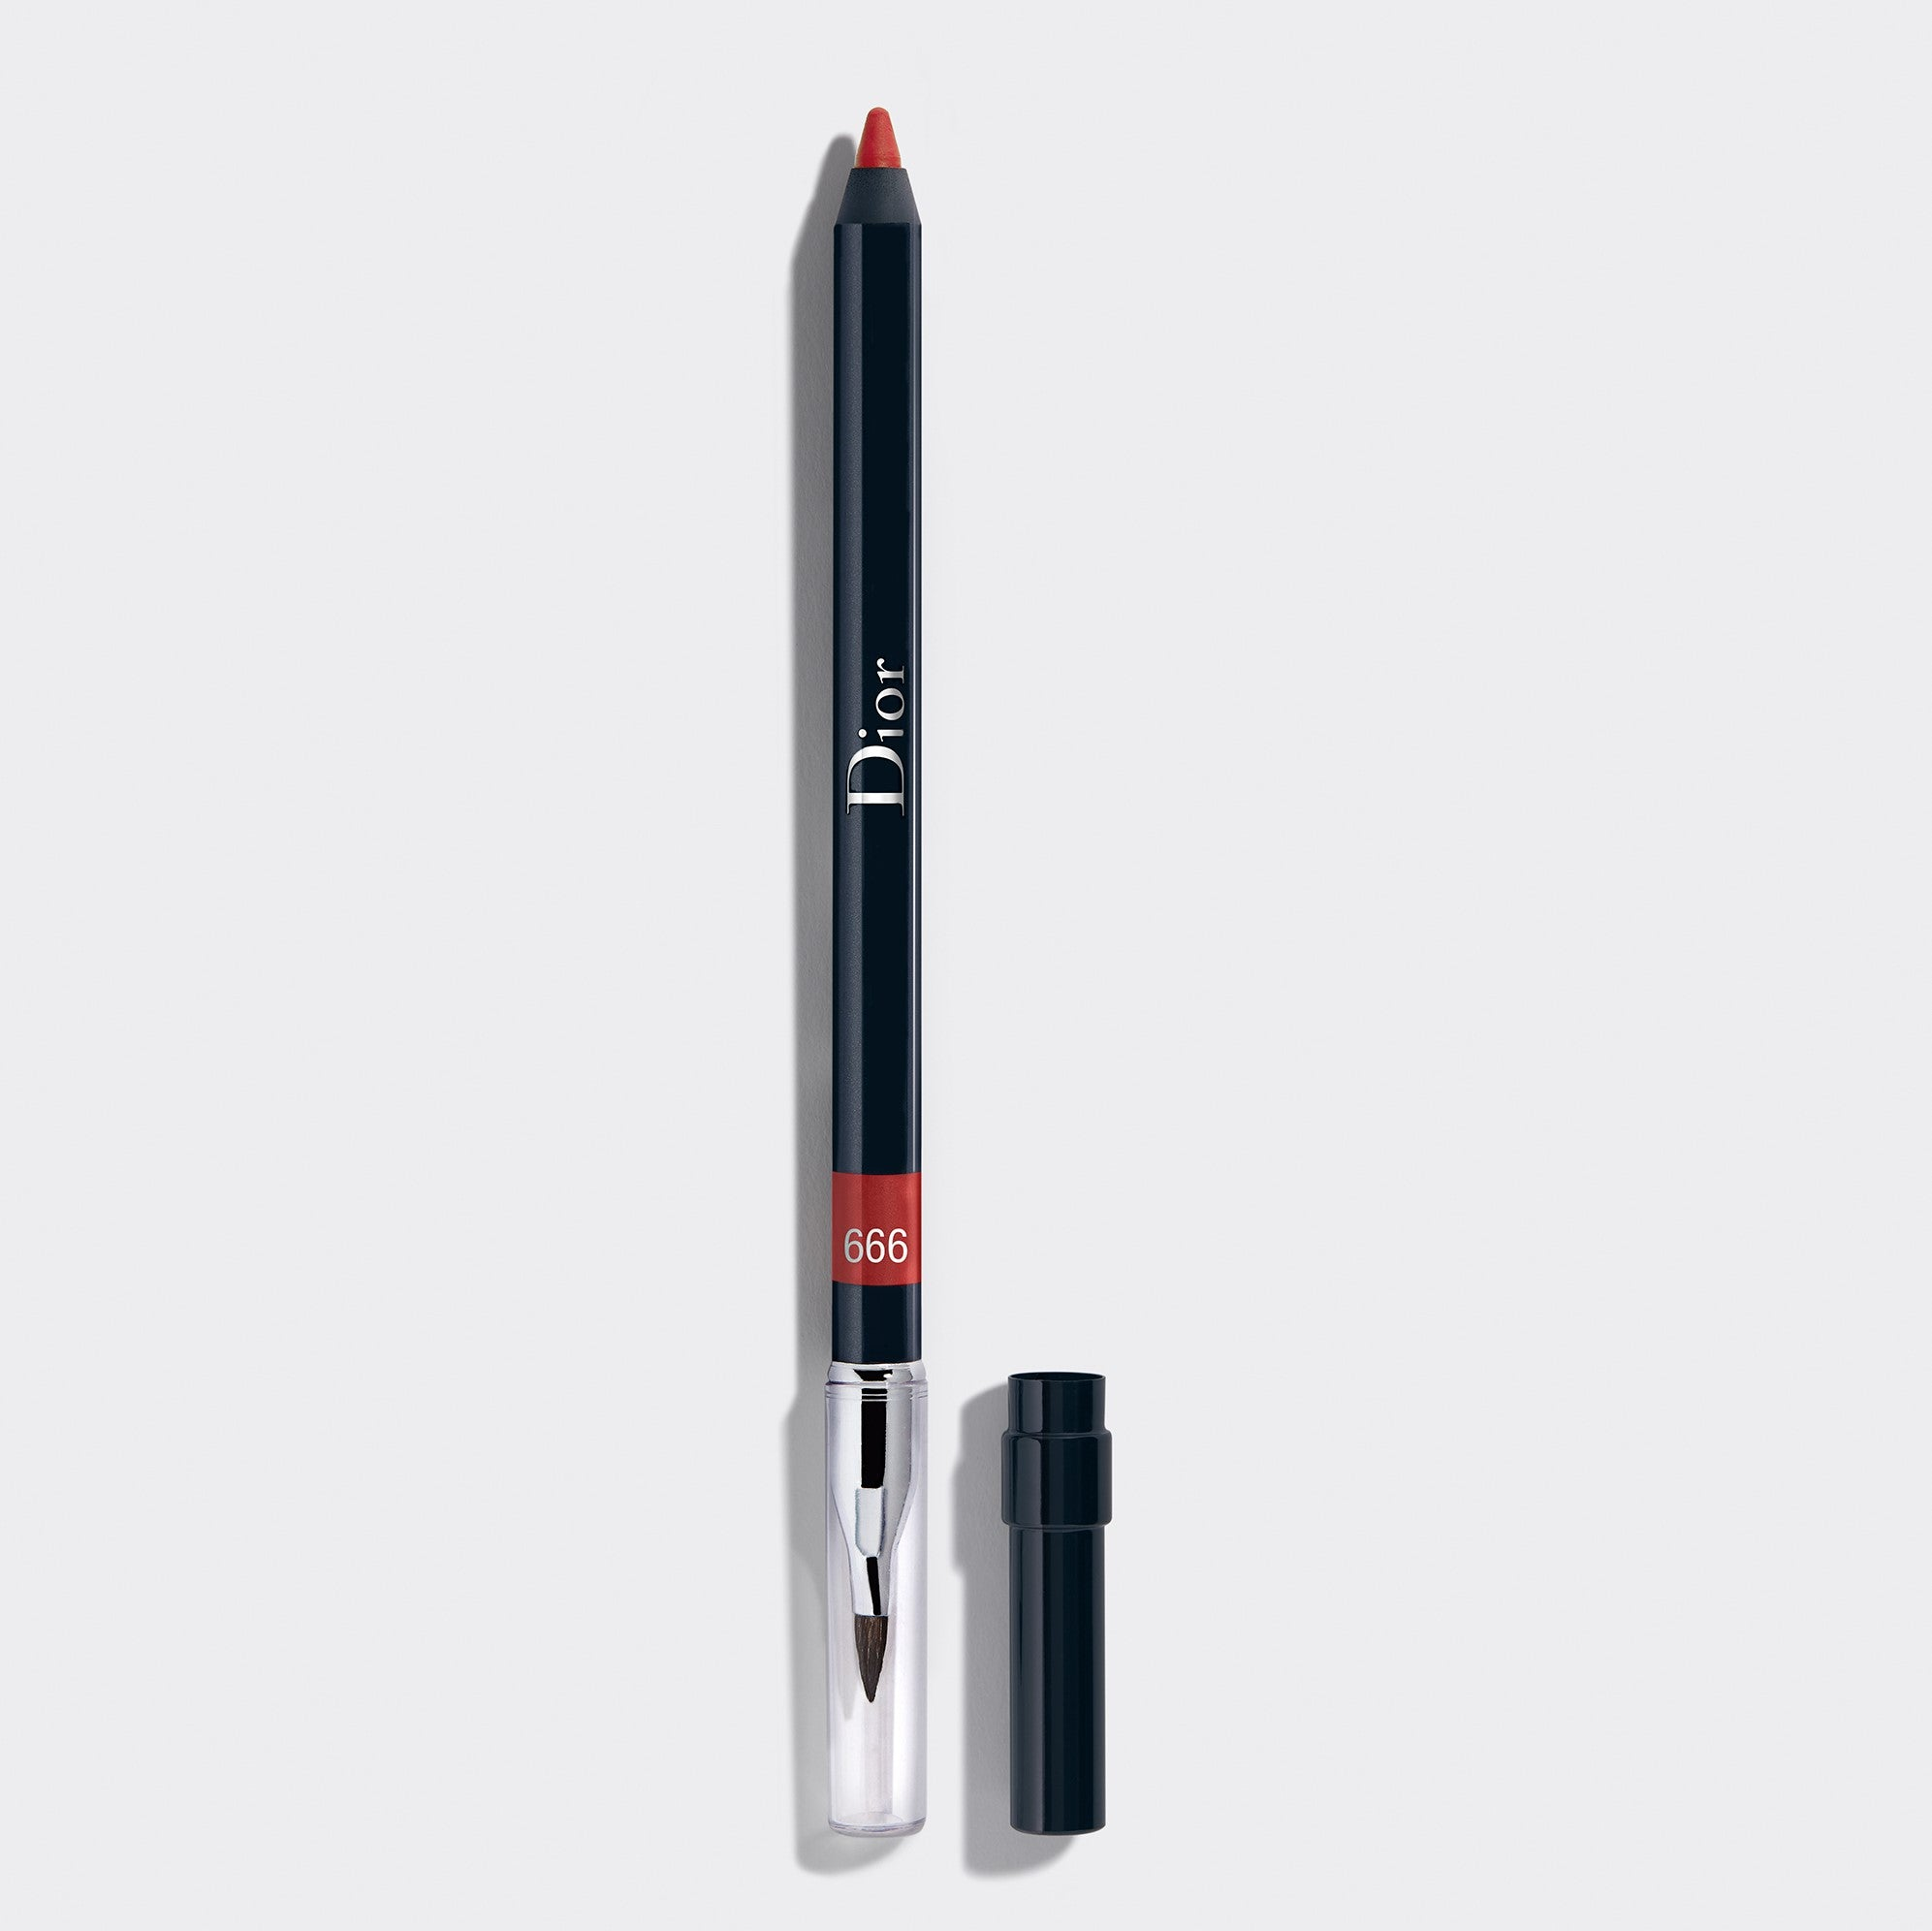 DIOR CONTOUR | Lip Liner Pencil - Intense Couture Color - Comfort & Long-Wear Makeup